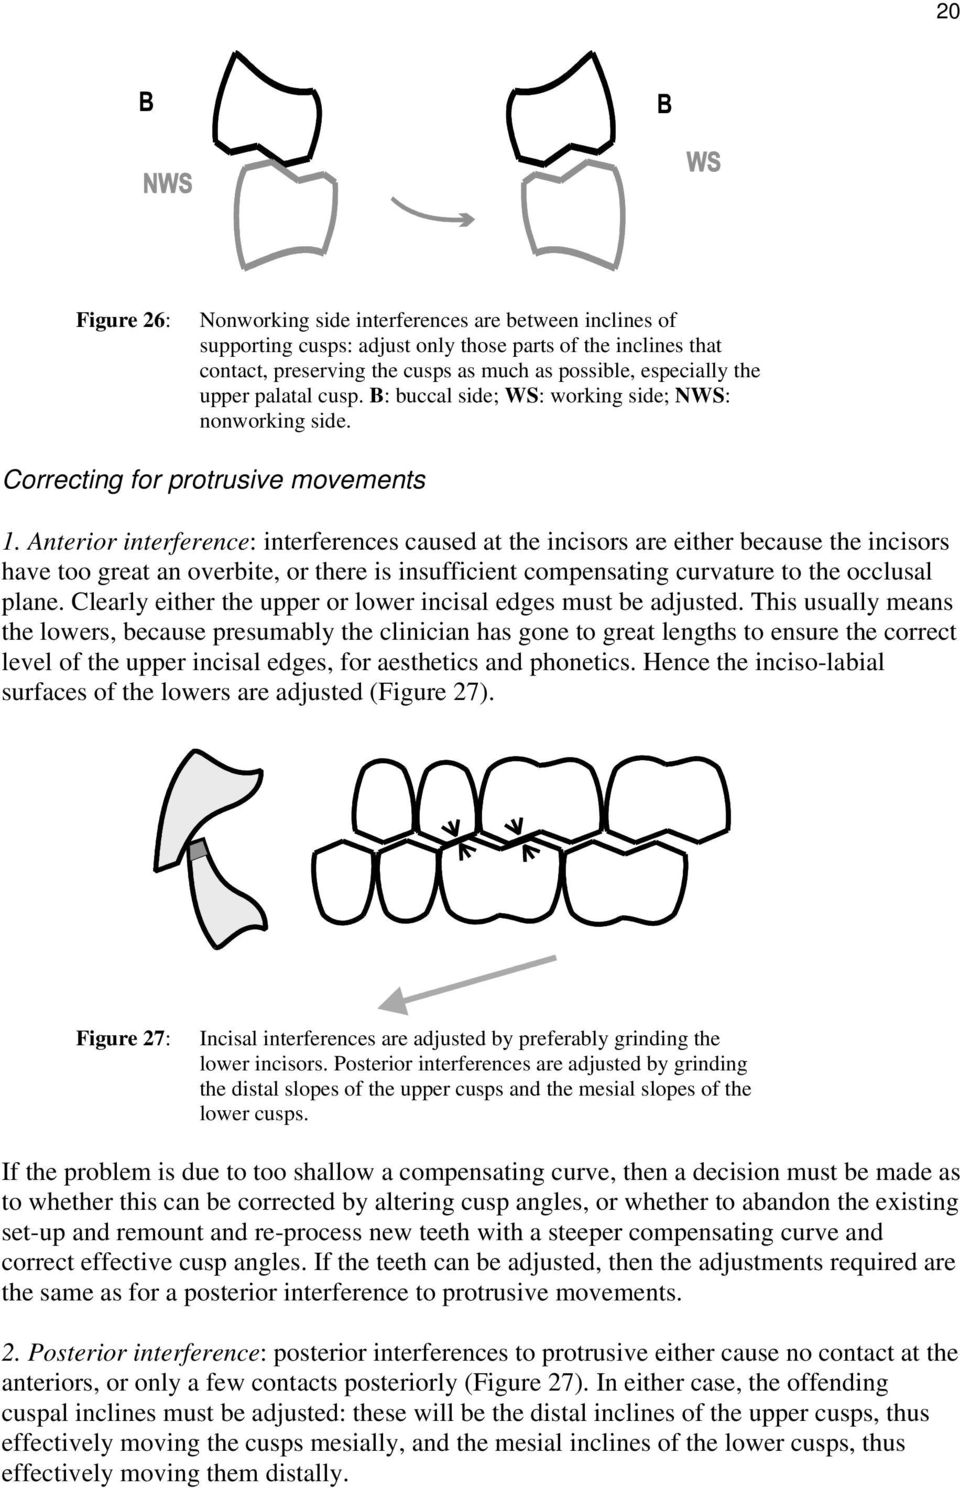 Anterior interference: interferences caused at the incisors are either because the incisors have too great an overbite, or there is insufficient compensating curvature to the occlusal plane.